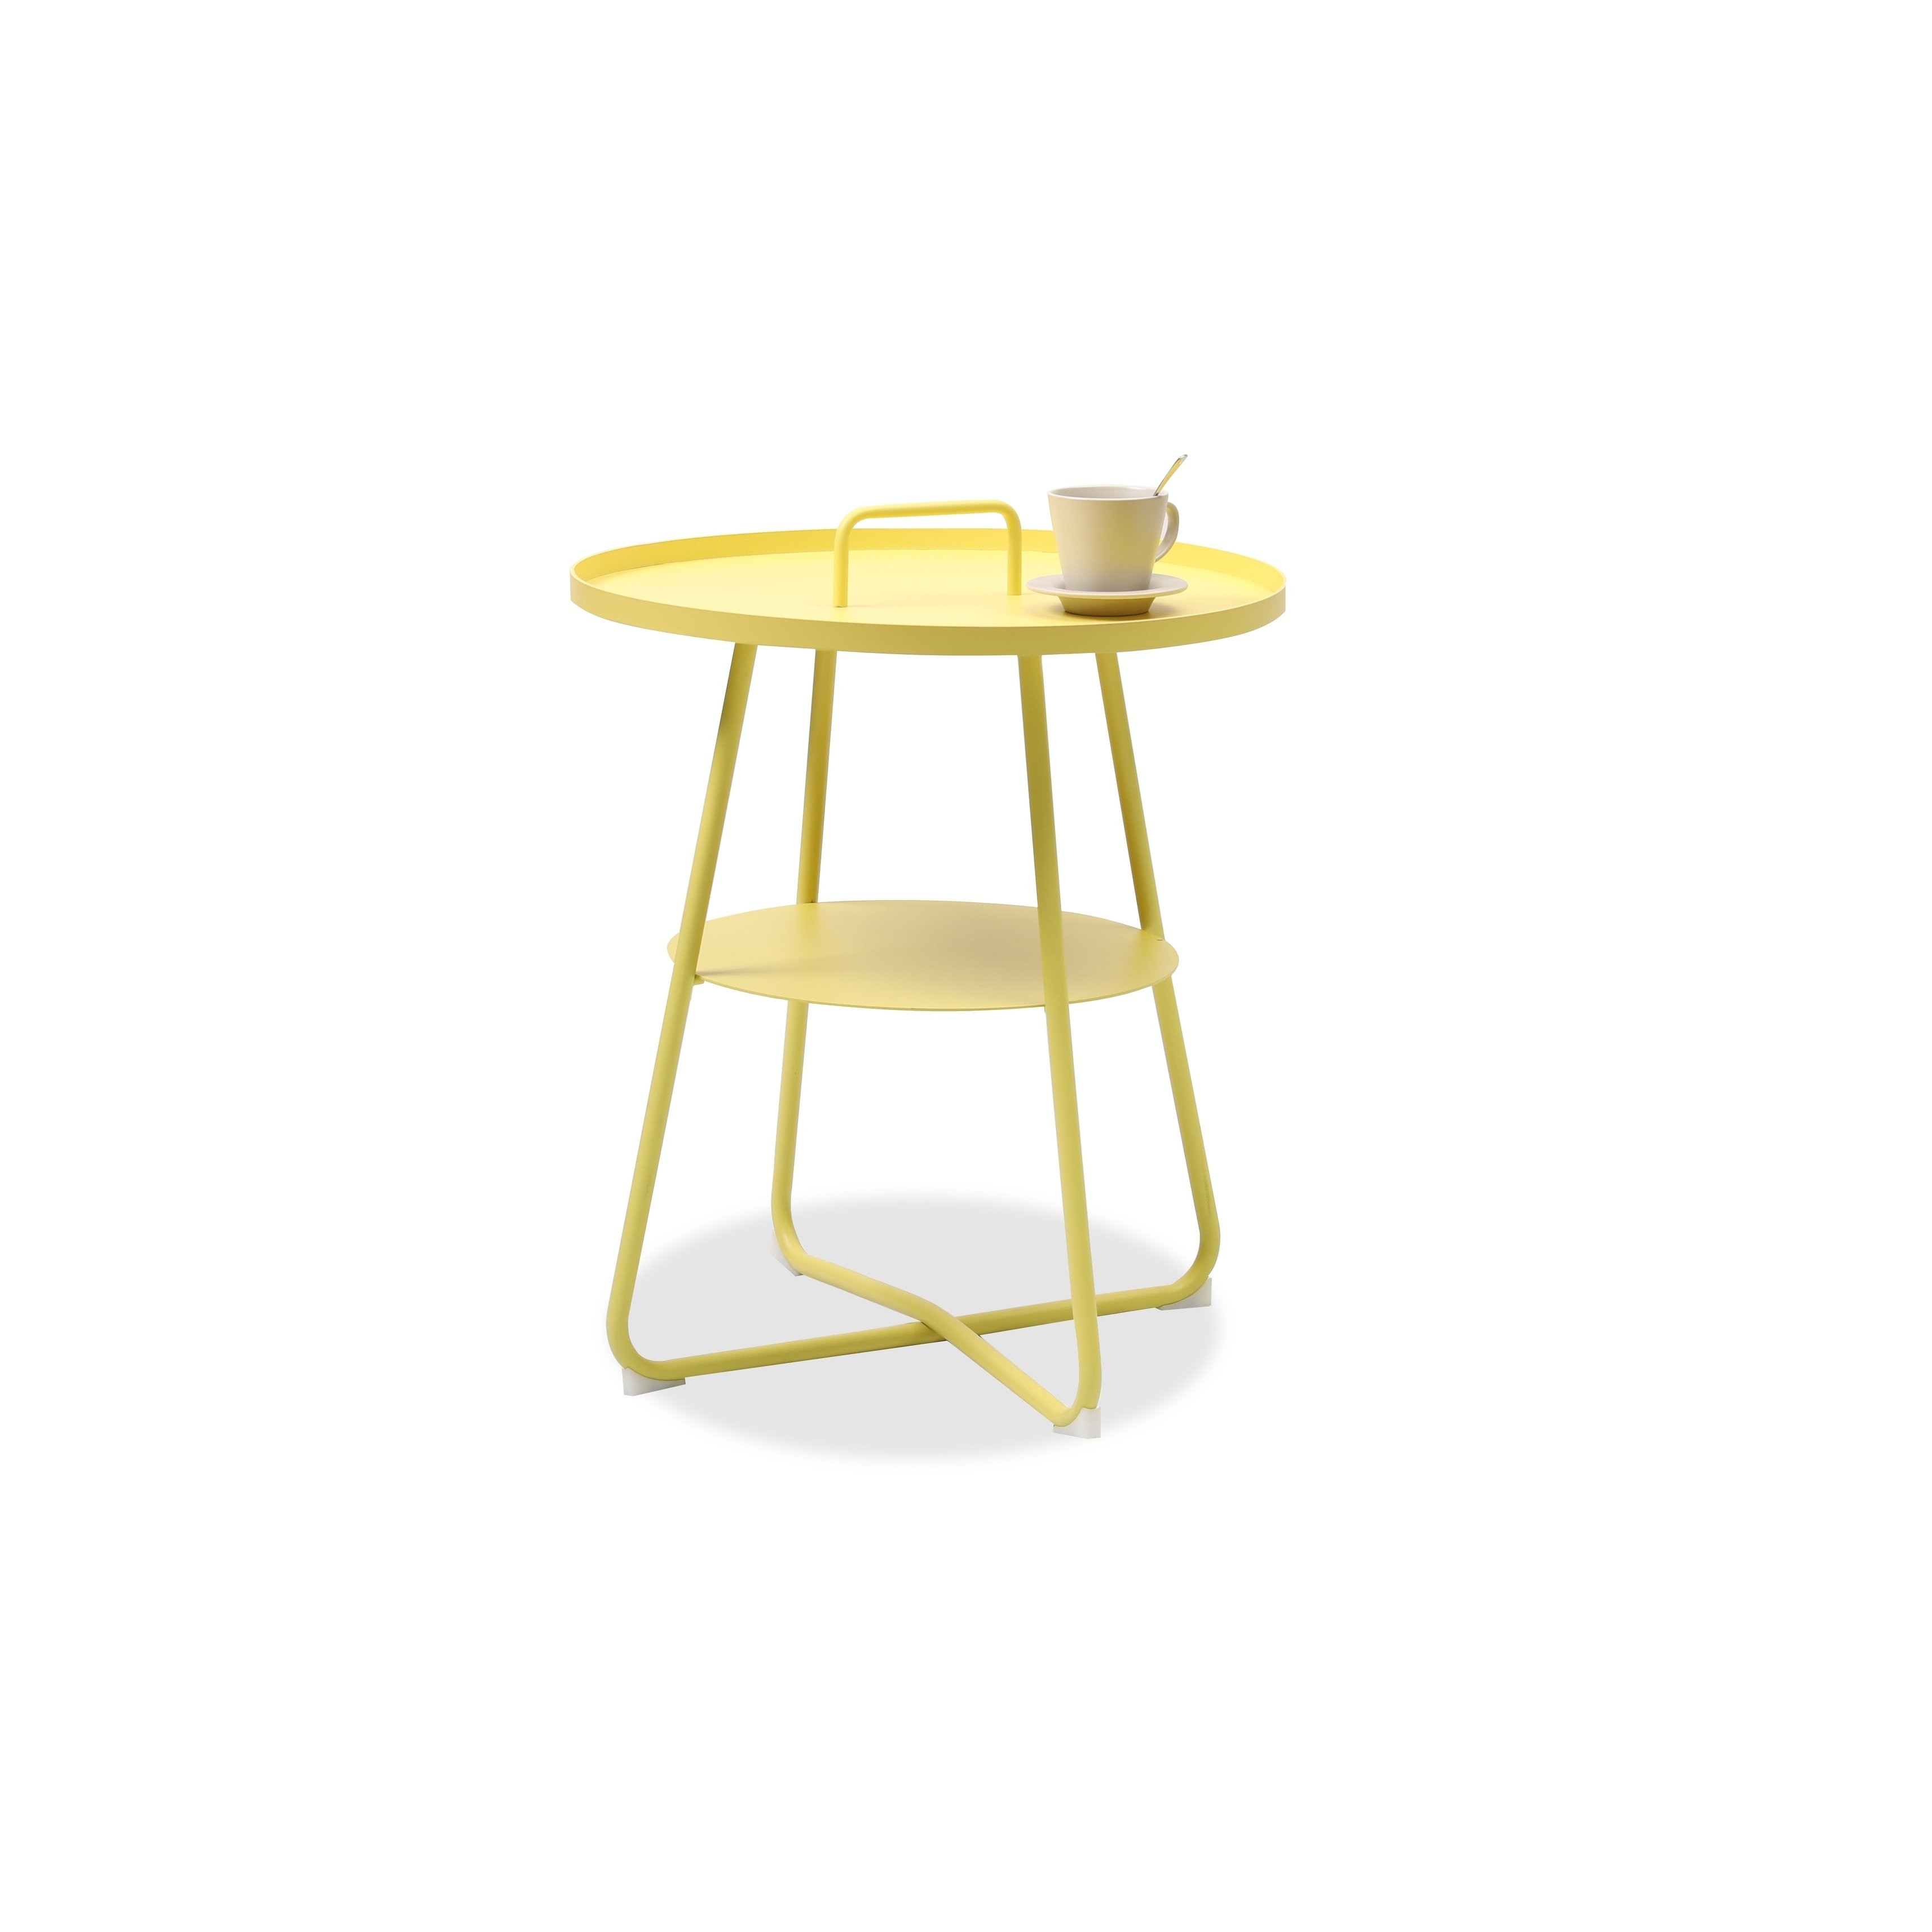 ryder outdoor side table free shipping today small accent white student desk shabby chic lamps youth furniture hampton bay dale tiffany sconce round pedestal dining acrylic set